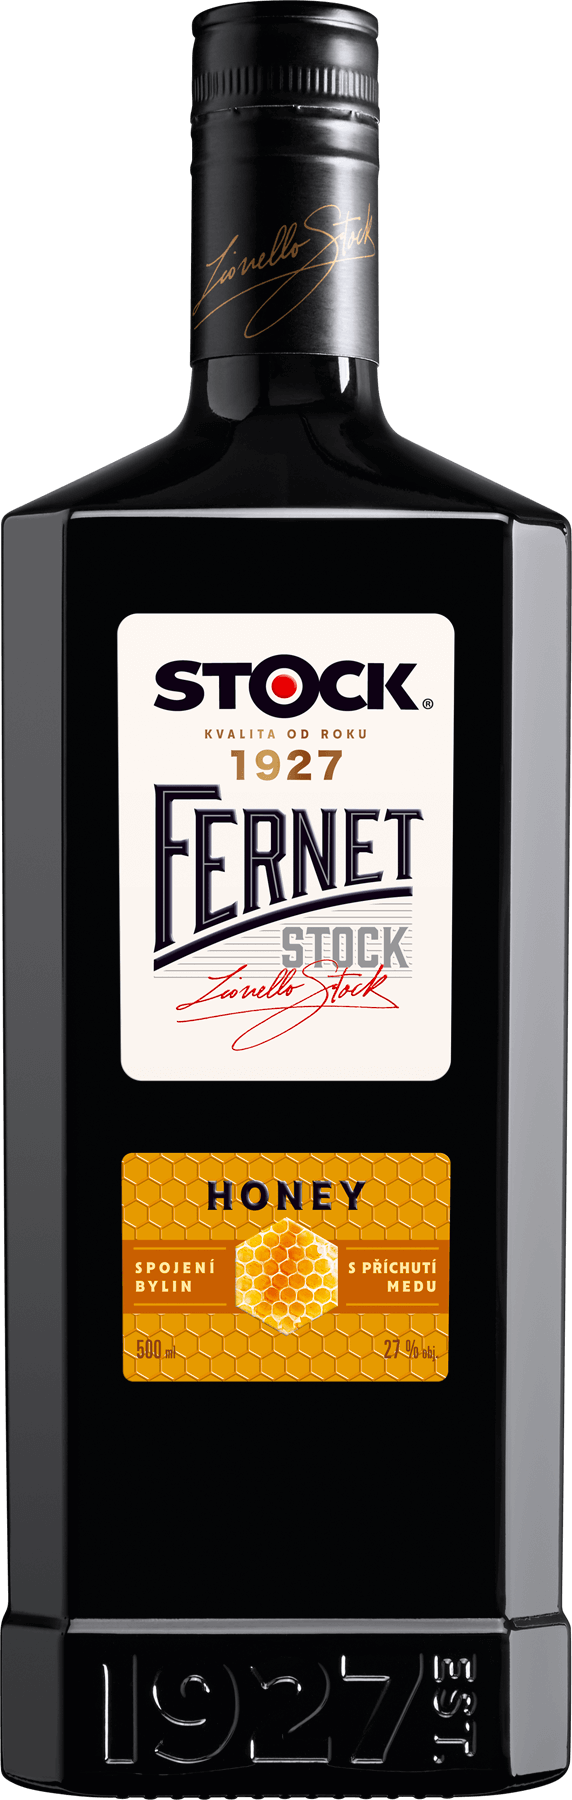 Fernet Stock Honey